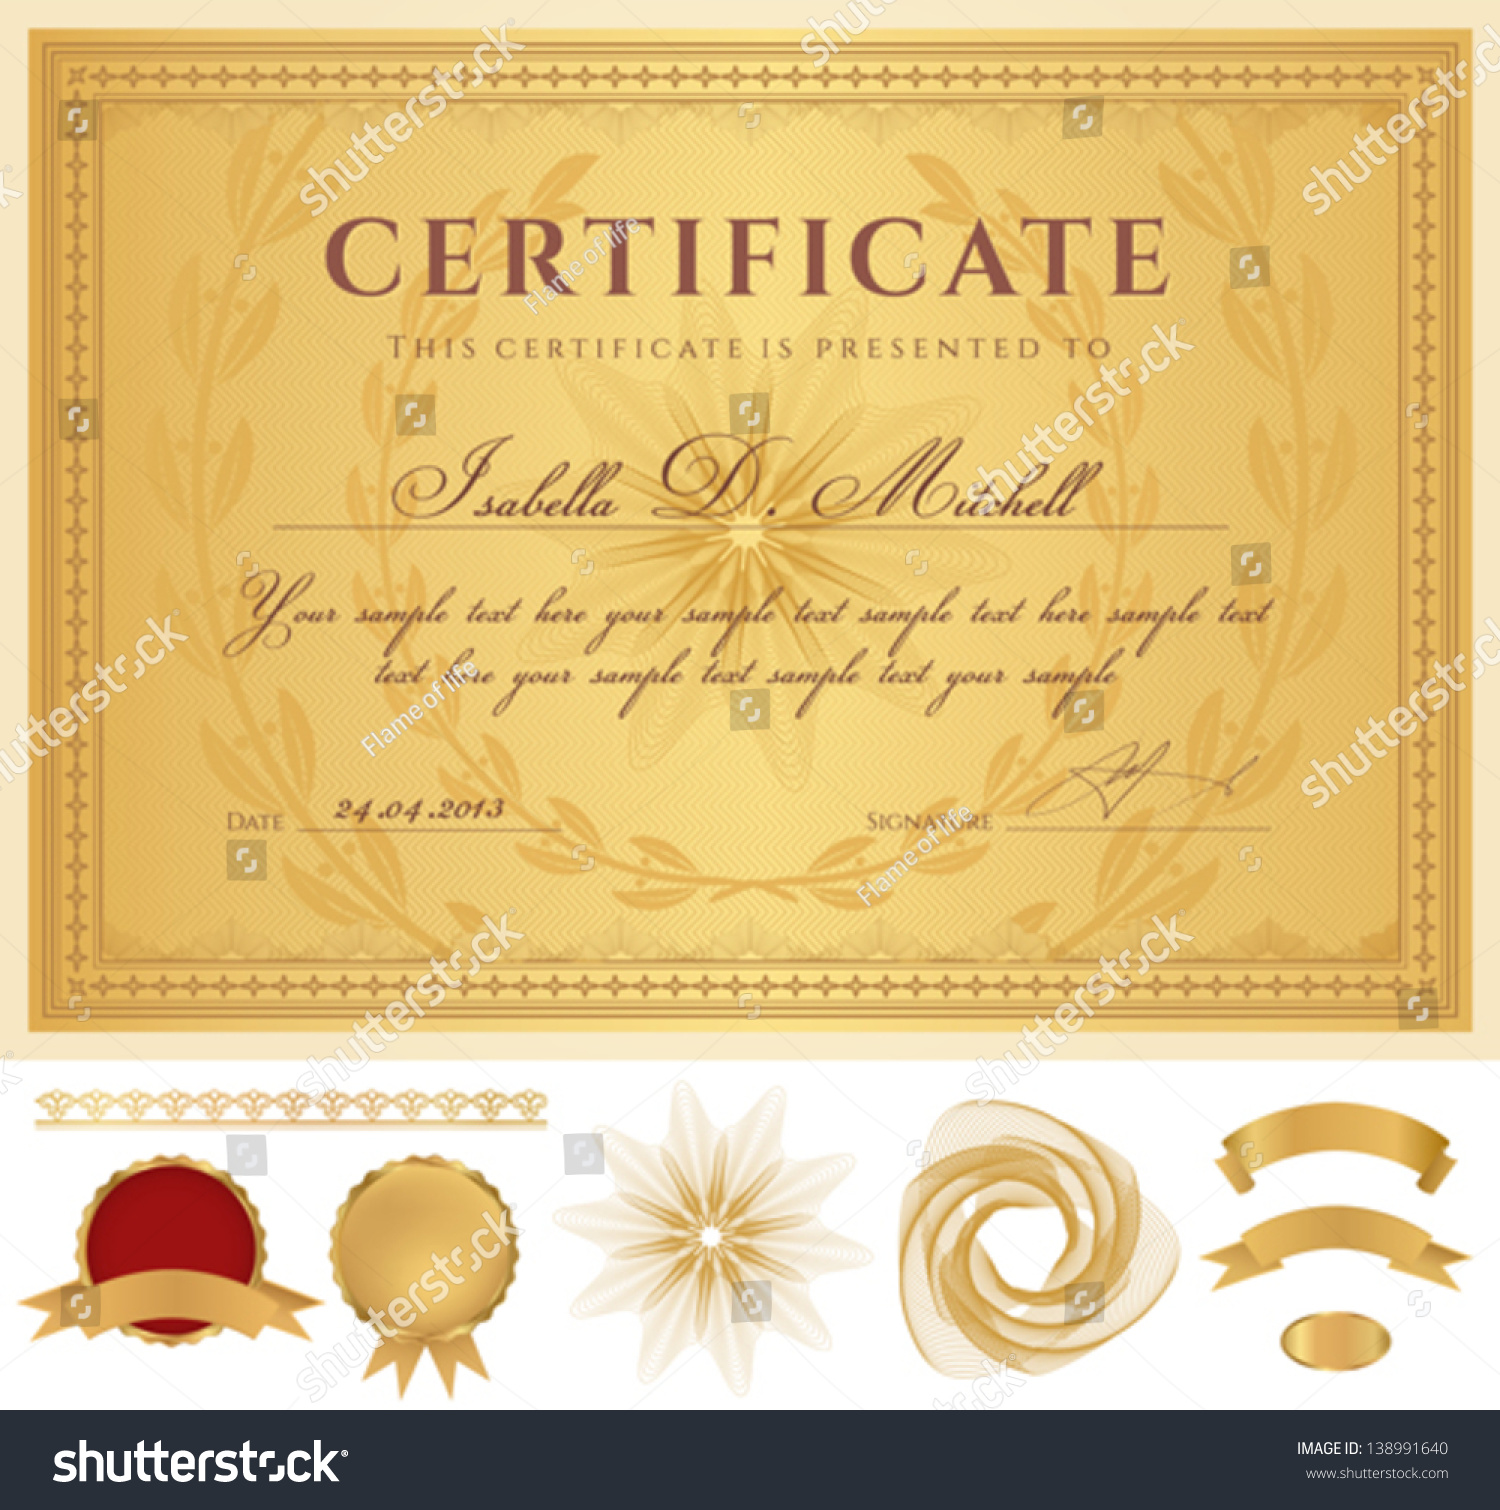 Horizontal Golden Certificate Completion Template Guilloche – Official Certificate Template